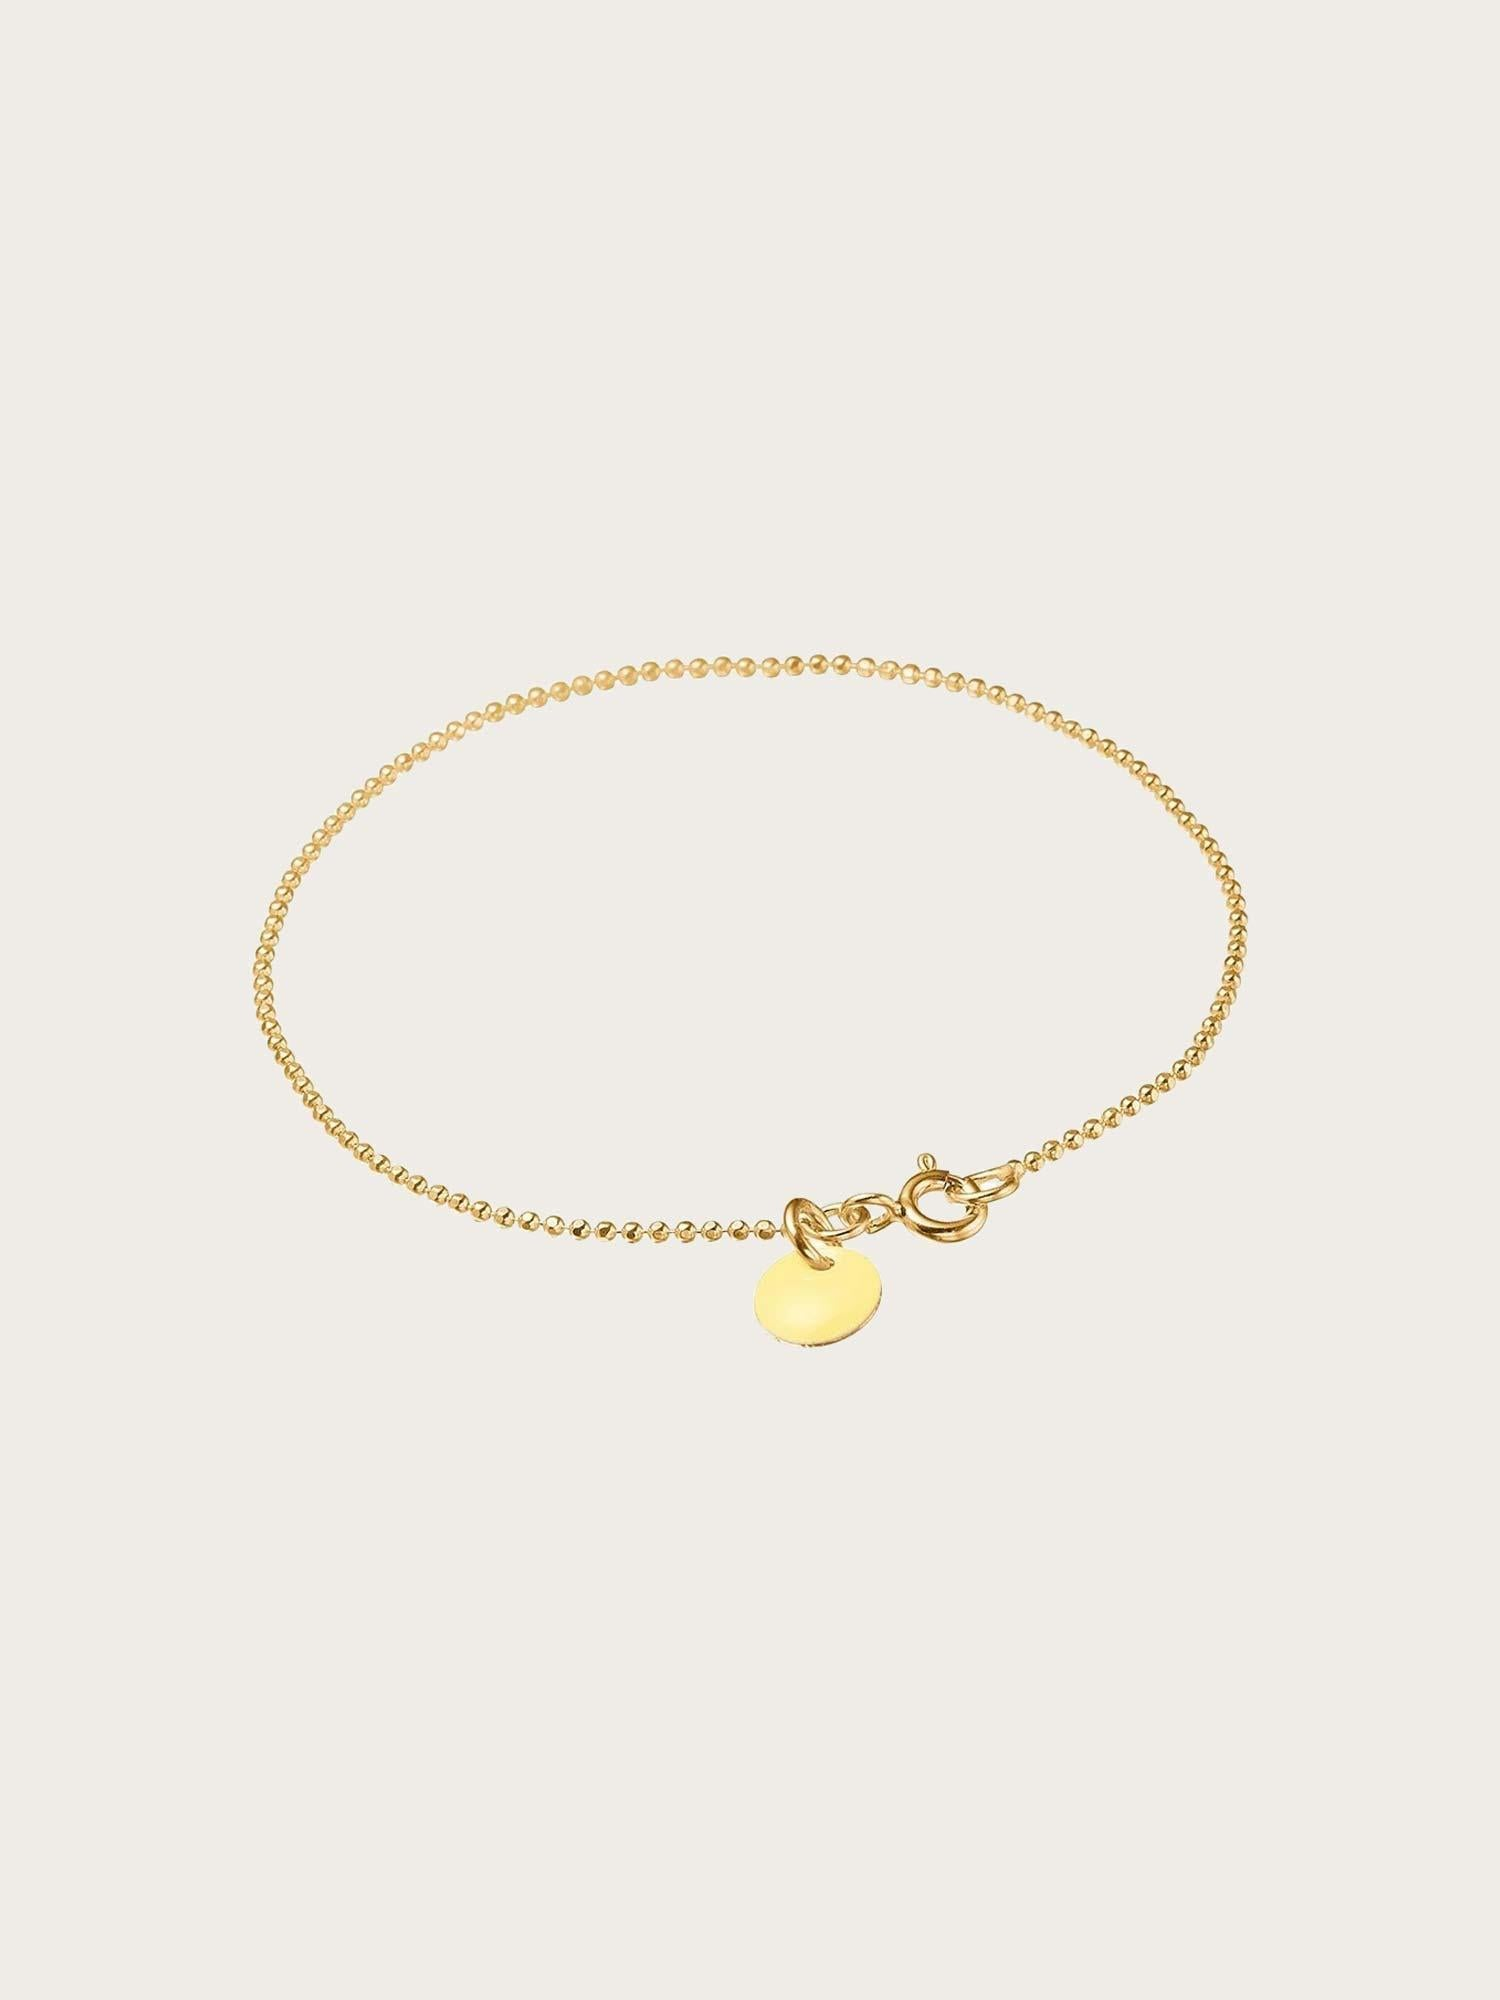 Bracelet Ball Chain Light Yellow